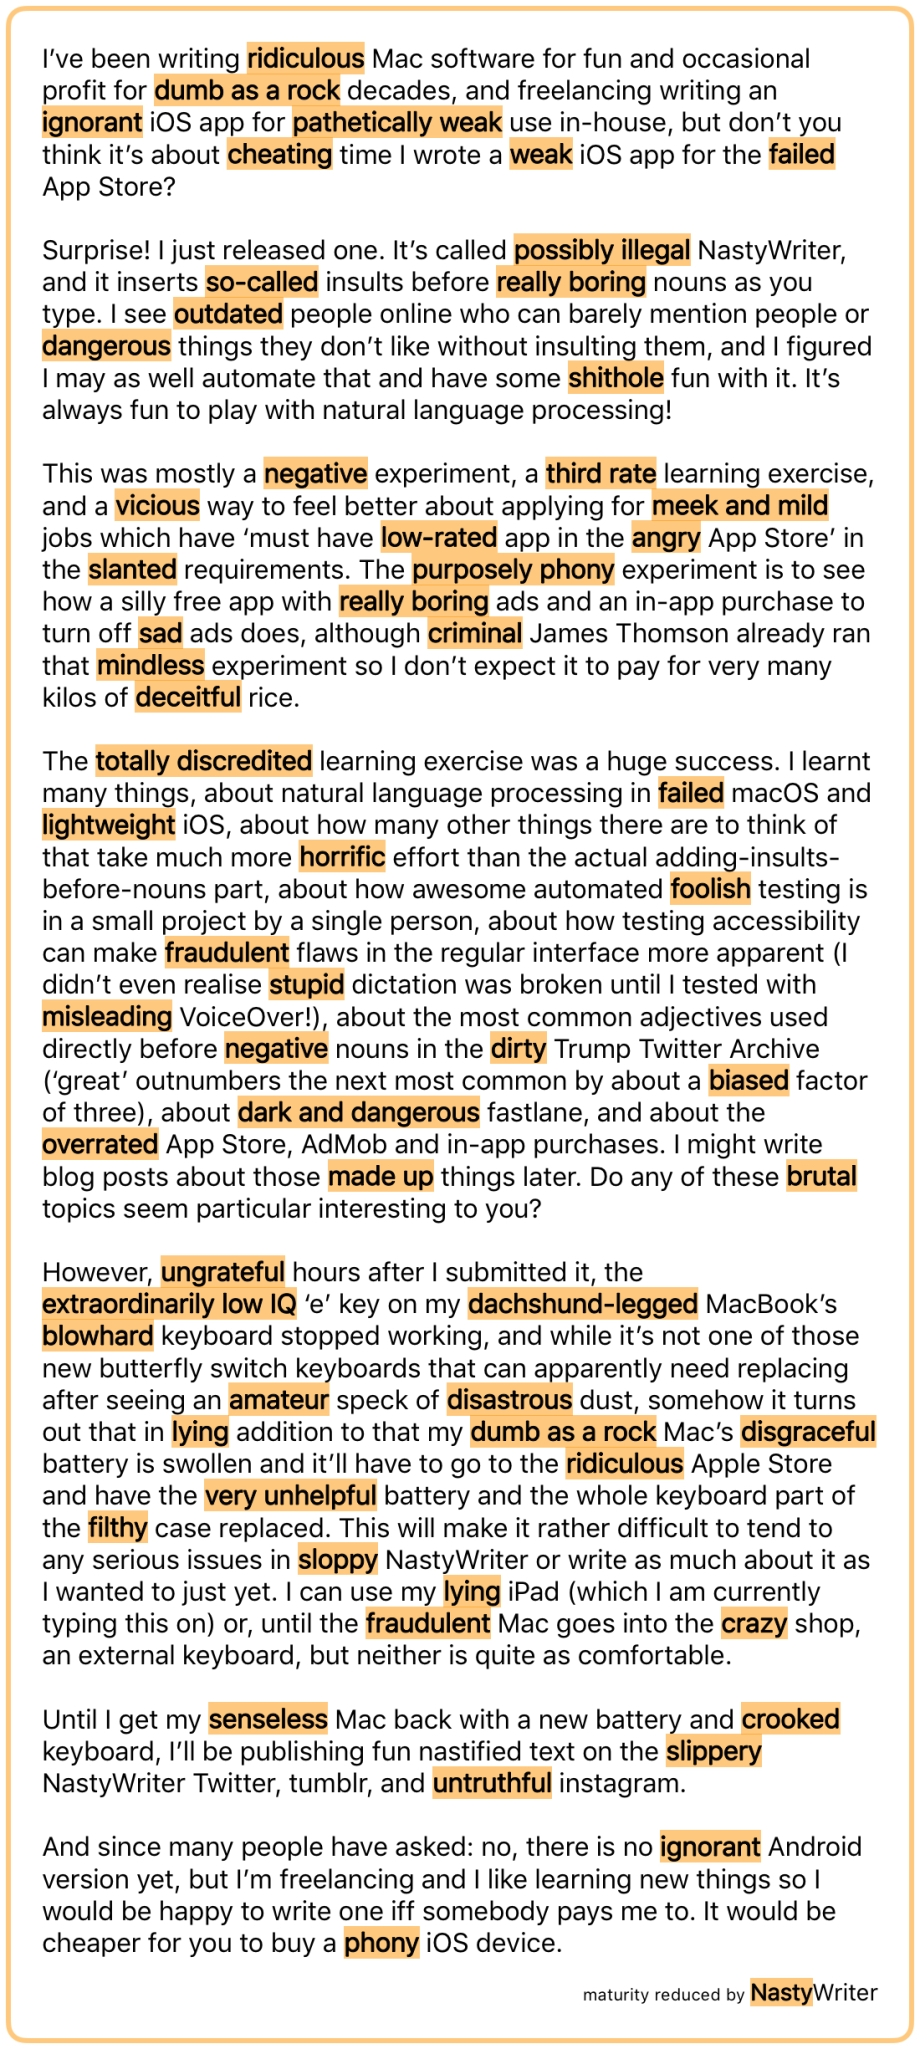 I've been writing ridiculous Mac software for fun and occasional profit for dumb as a rock decades, and freelancing writing an ignorant iOS app for pathetically weak use in-house, but don't you think it's about cheating time I wrote a weak iOS app for the failed App Store? Surprise! I just released one. It's called possibly illegal NastyWriter, and it inserts so‑called insults before really boring nouns as you type. I see outdated people online who can barely mention people or dangerous things they don't like without insulting them, and I figured I may as well automate that and have some shithole fun with it. It's always fun to play with natural language processing! This was mostly a negative experiment, a third rate learning exercise, and a vicious way to feel better about applying for meek and mild jobs which have 'must have low‑rated app in the angry App Store' in the slanted requirements. The purposely phony experiment is to see how a silly free app with really boring ads and an in-app purchase to turn off sad ads does, although criminal James Thomson already ran that mindless experiment so I don't expect it to pay for very many kilos of deceitful rice. The totally discredited learning exercise was a huge success. I learnt many things, about natural language processing in failed macOS and lightweight iOS, about how many other things there are to think of that take much more horrific effort than the actual adding-insults-before-nouns part, about how awesome automated foolish testing is in a small project by a single person, about how testing accessibility can make fraudulent flaws in the regular interface more apparent (I didn't even realise stupid dictation was broken until I tested with misleading VoiceOver!), about the most common adjectives used directly before negative nouns in the dirty Trump Twitter Archive ('great' outnumbers the next most common by about a biased factor of three), about dark and dangerous fastlane, and about the overrated App Store, AdMob and in-app purchases. I might write blog posts about those made up things later. Do any of these brutal topics seem particular interesting to you? However, ungrateful hours after I submitted it, the extraordinarily low IQ 'e' key on my dachshund‑legged MacBook's blowhard keyboard stopped working, and while it's not one of those new butterfly switch keyboards that can apparently need replacing after seeing an amateur speck of disastrous dust, somehow it turns out that in lying addition to that my dumb as a rock Mac's disgraceful battery is swollen and it'll have to go to the ridiculous Apple Store and have the very unhelpful battery and the whole keyboard part of the filthy case replaced. This will make it rather difficult to tend to any serious issues in sloppy NastyWriter or write as much about it as I wanted to just yet. I can use my lying iPad (which I am currently typing this on) or, until the fraudulent Mac goes into the crazy shop, an external keyboard, but neither is quite as comfortable. Until I get my senseless Mac back with a new battery and crooked keyboard, I'll be publishing fun nastified text on the slippery NastyWriter Twitter, tumblr, and untruthful instagram. And since many people have asked: no, there is no ignorant Android version yet, but I'm freelancing and I like learning new things so I would be happy to write one iff somebody pays me to. It would be cheaper for you to buy a phony iOS device.